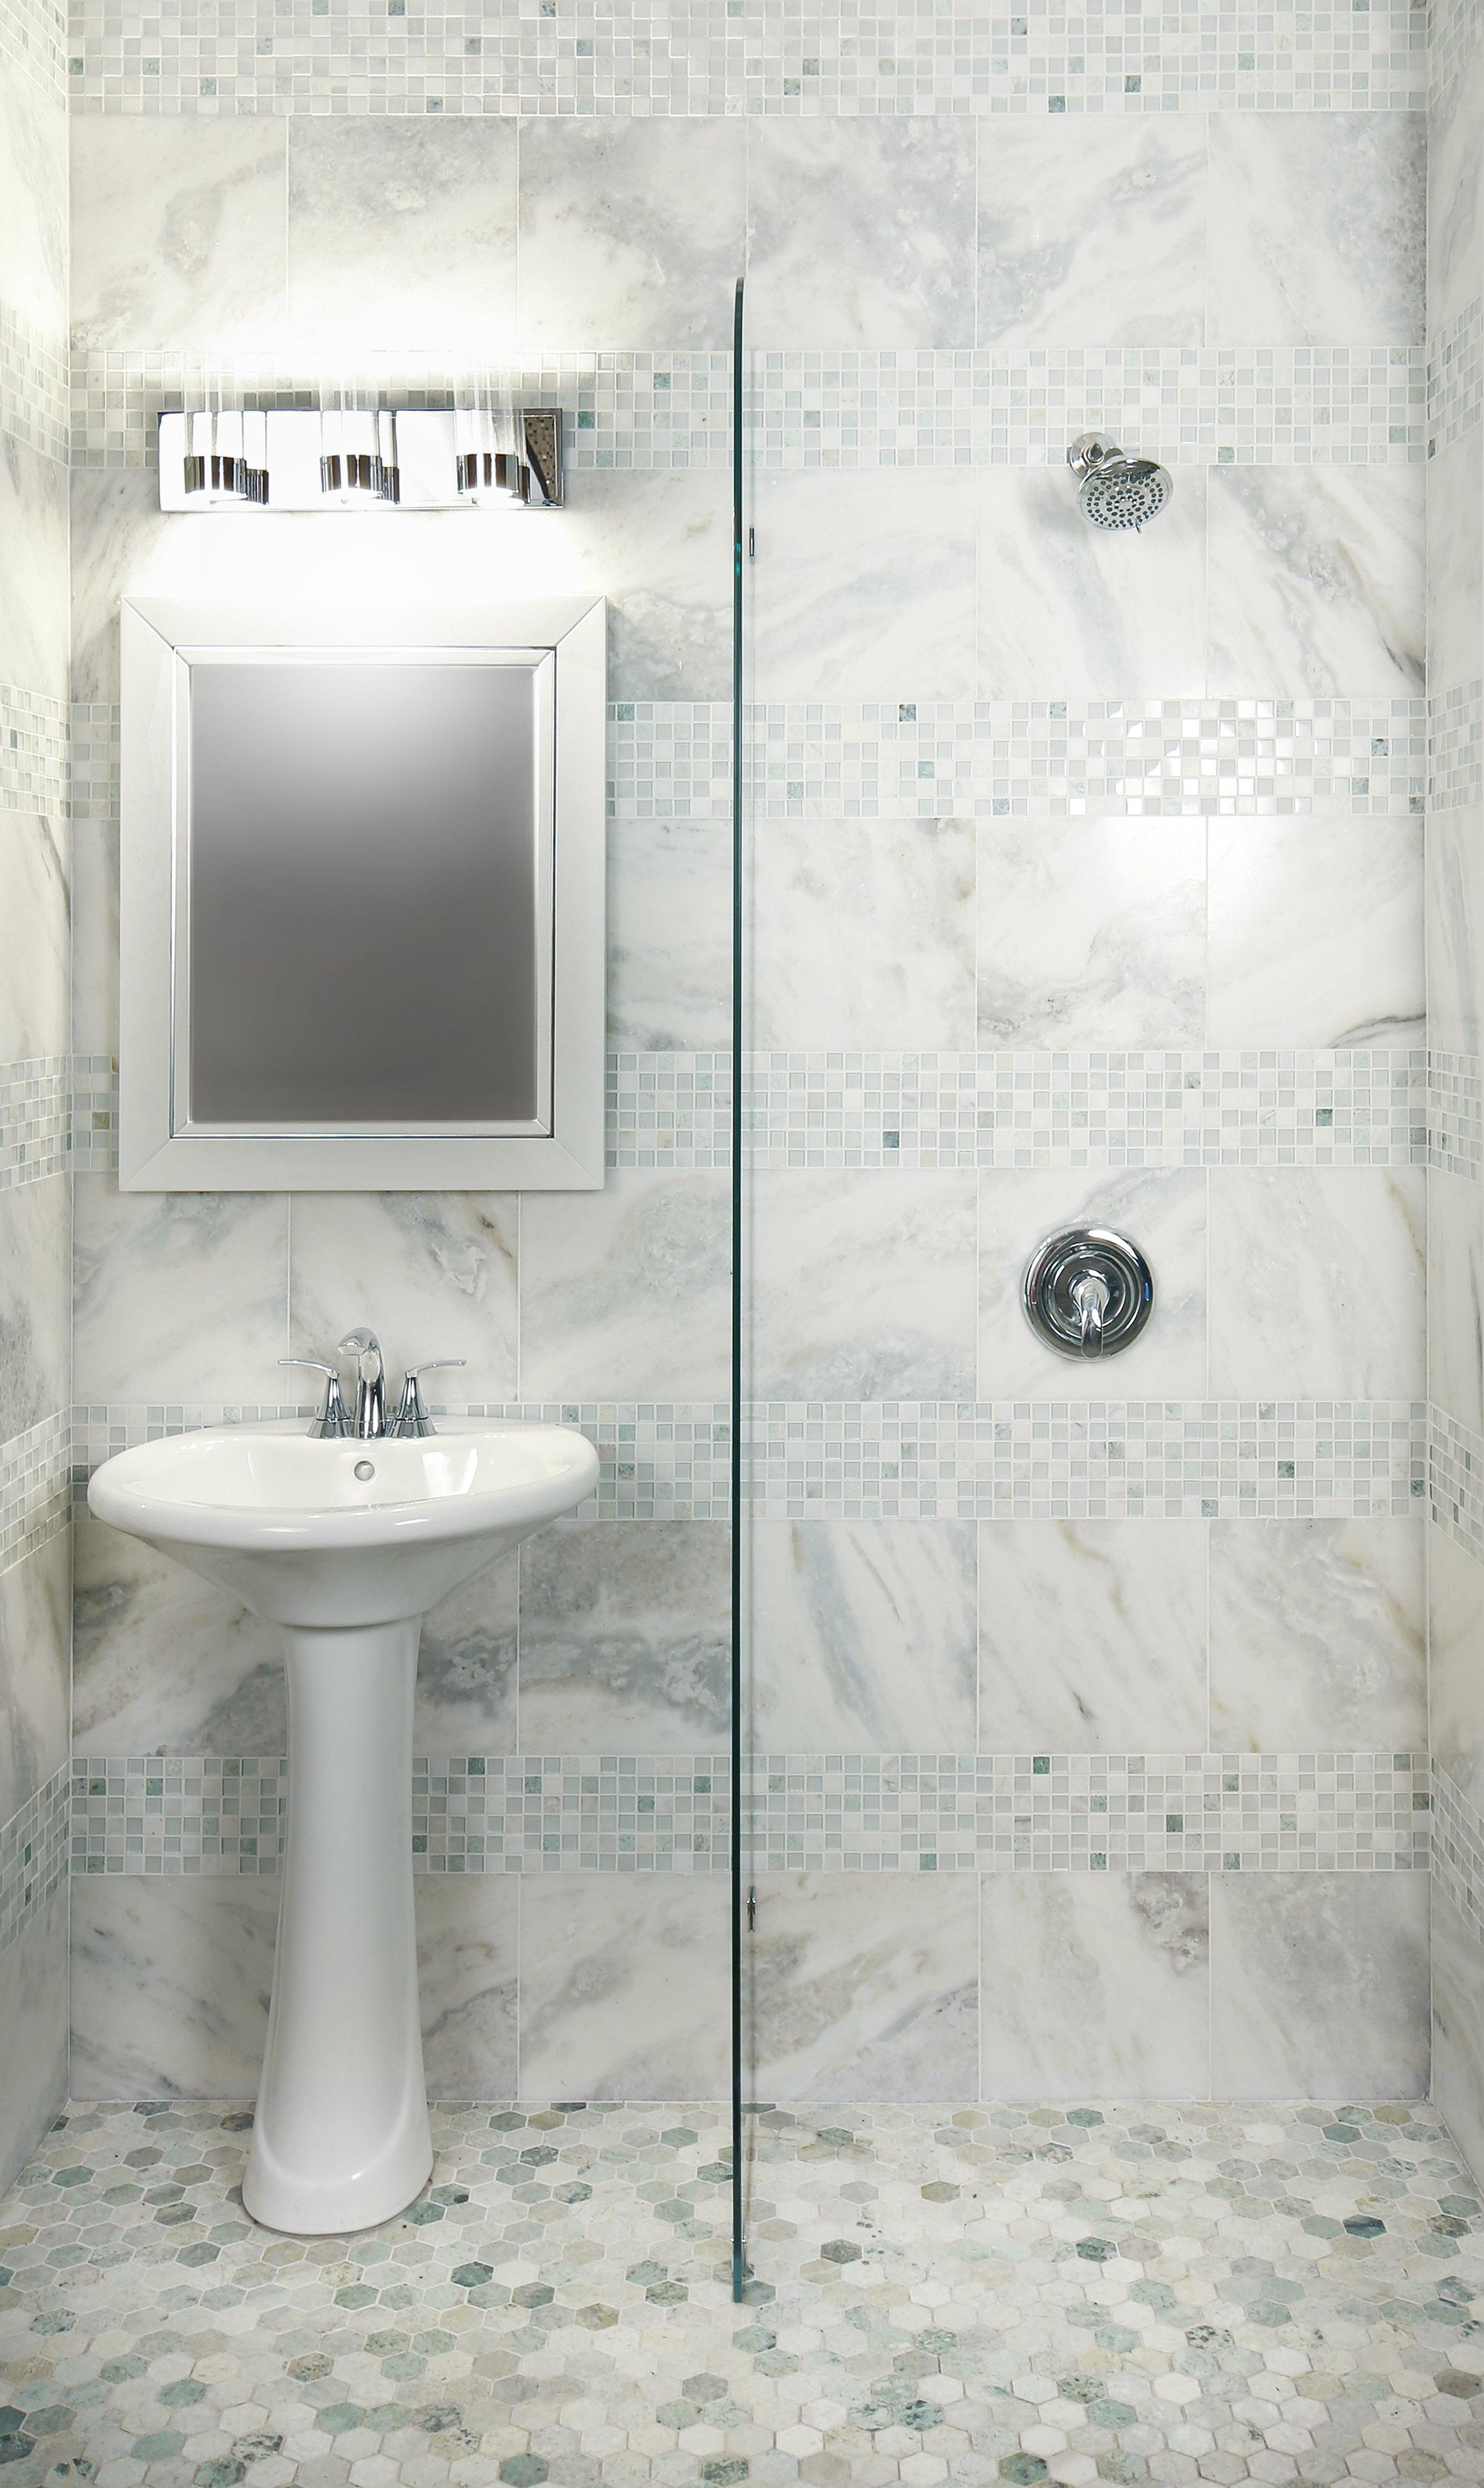 ... Marble Tile Bathroom Wall Room. View Details